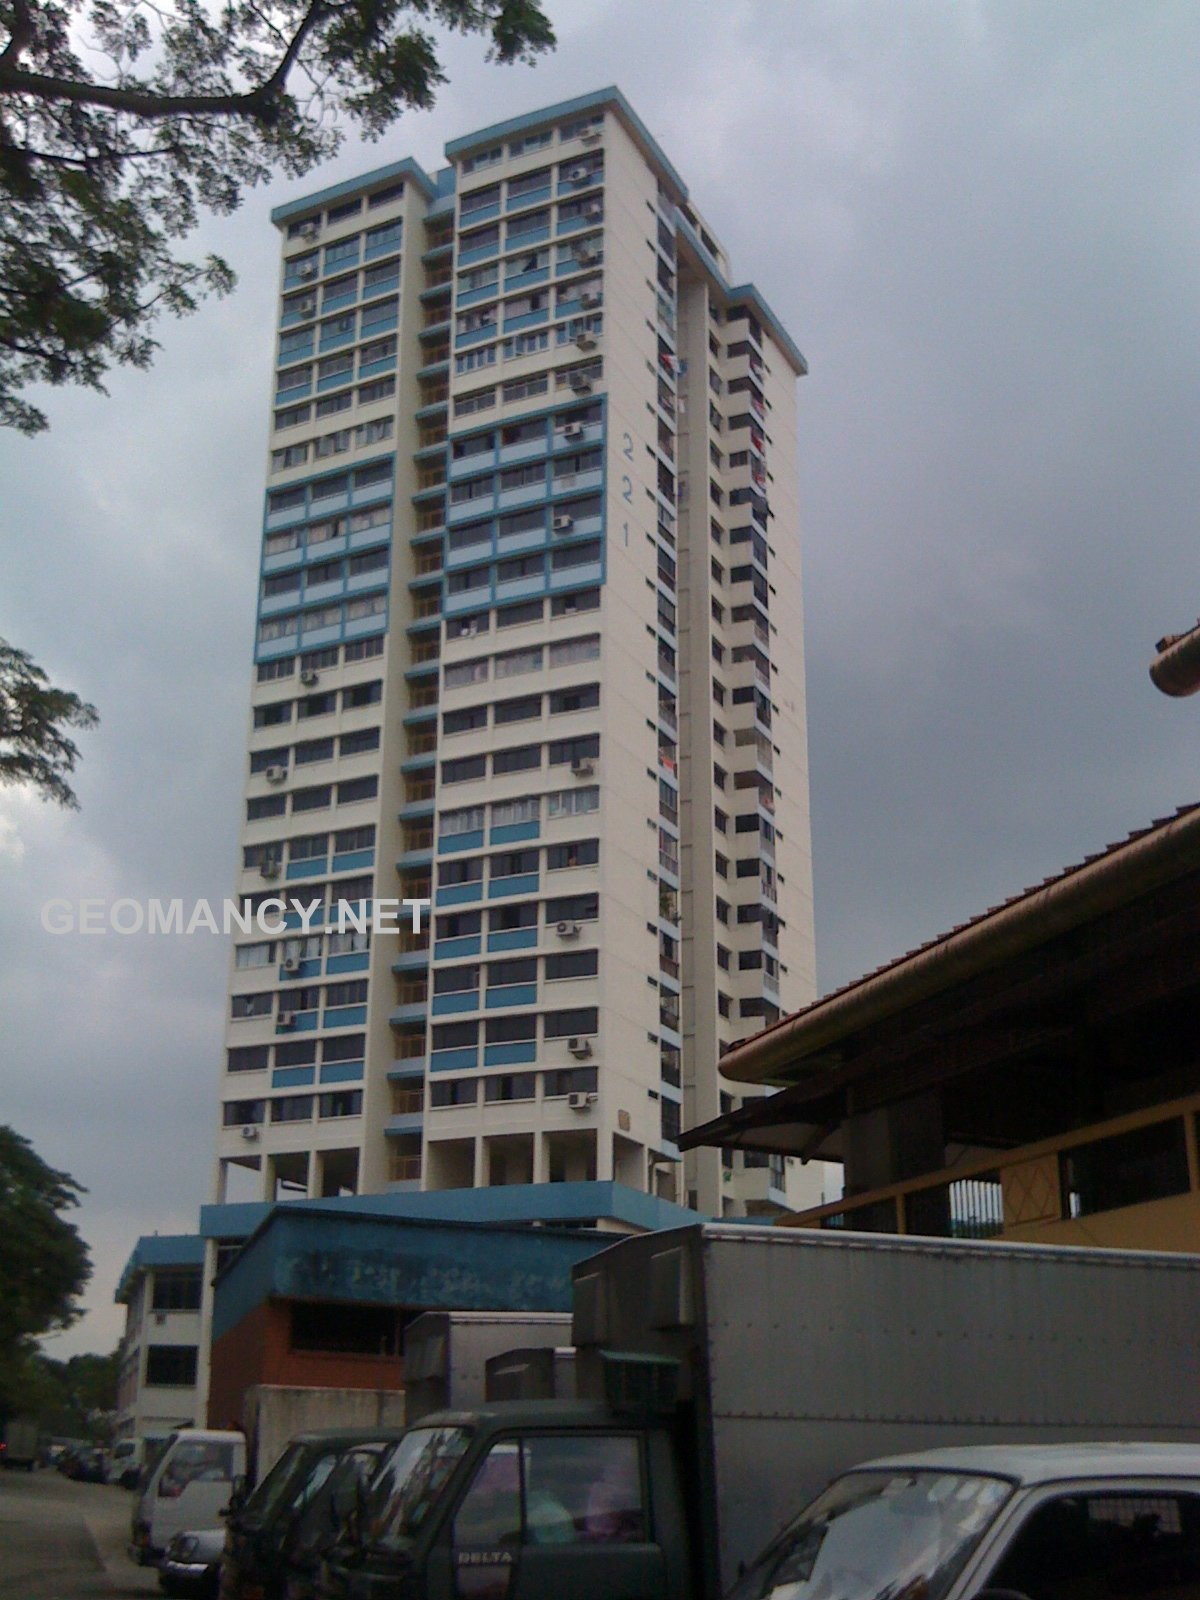 HDB 3 Room Flats: built between 1964 to 1983 - Singapore ...